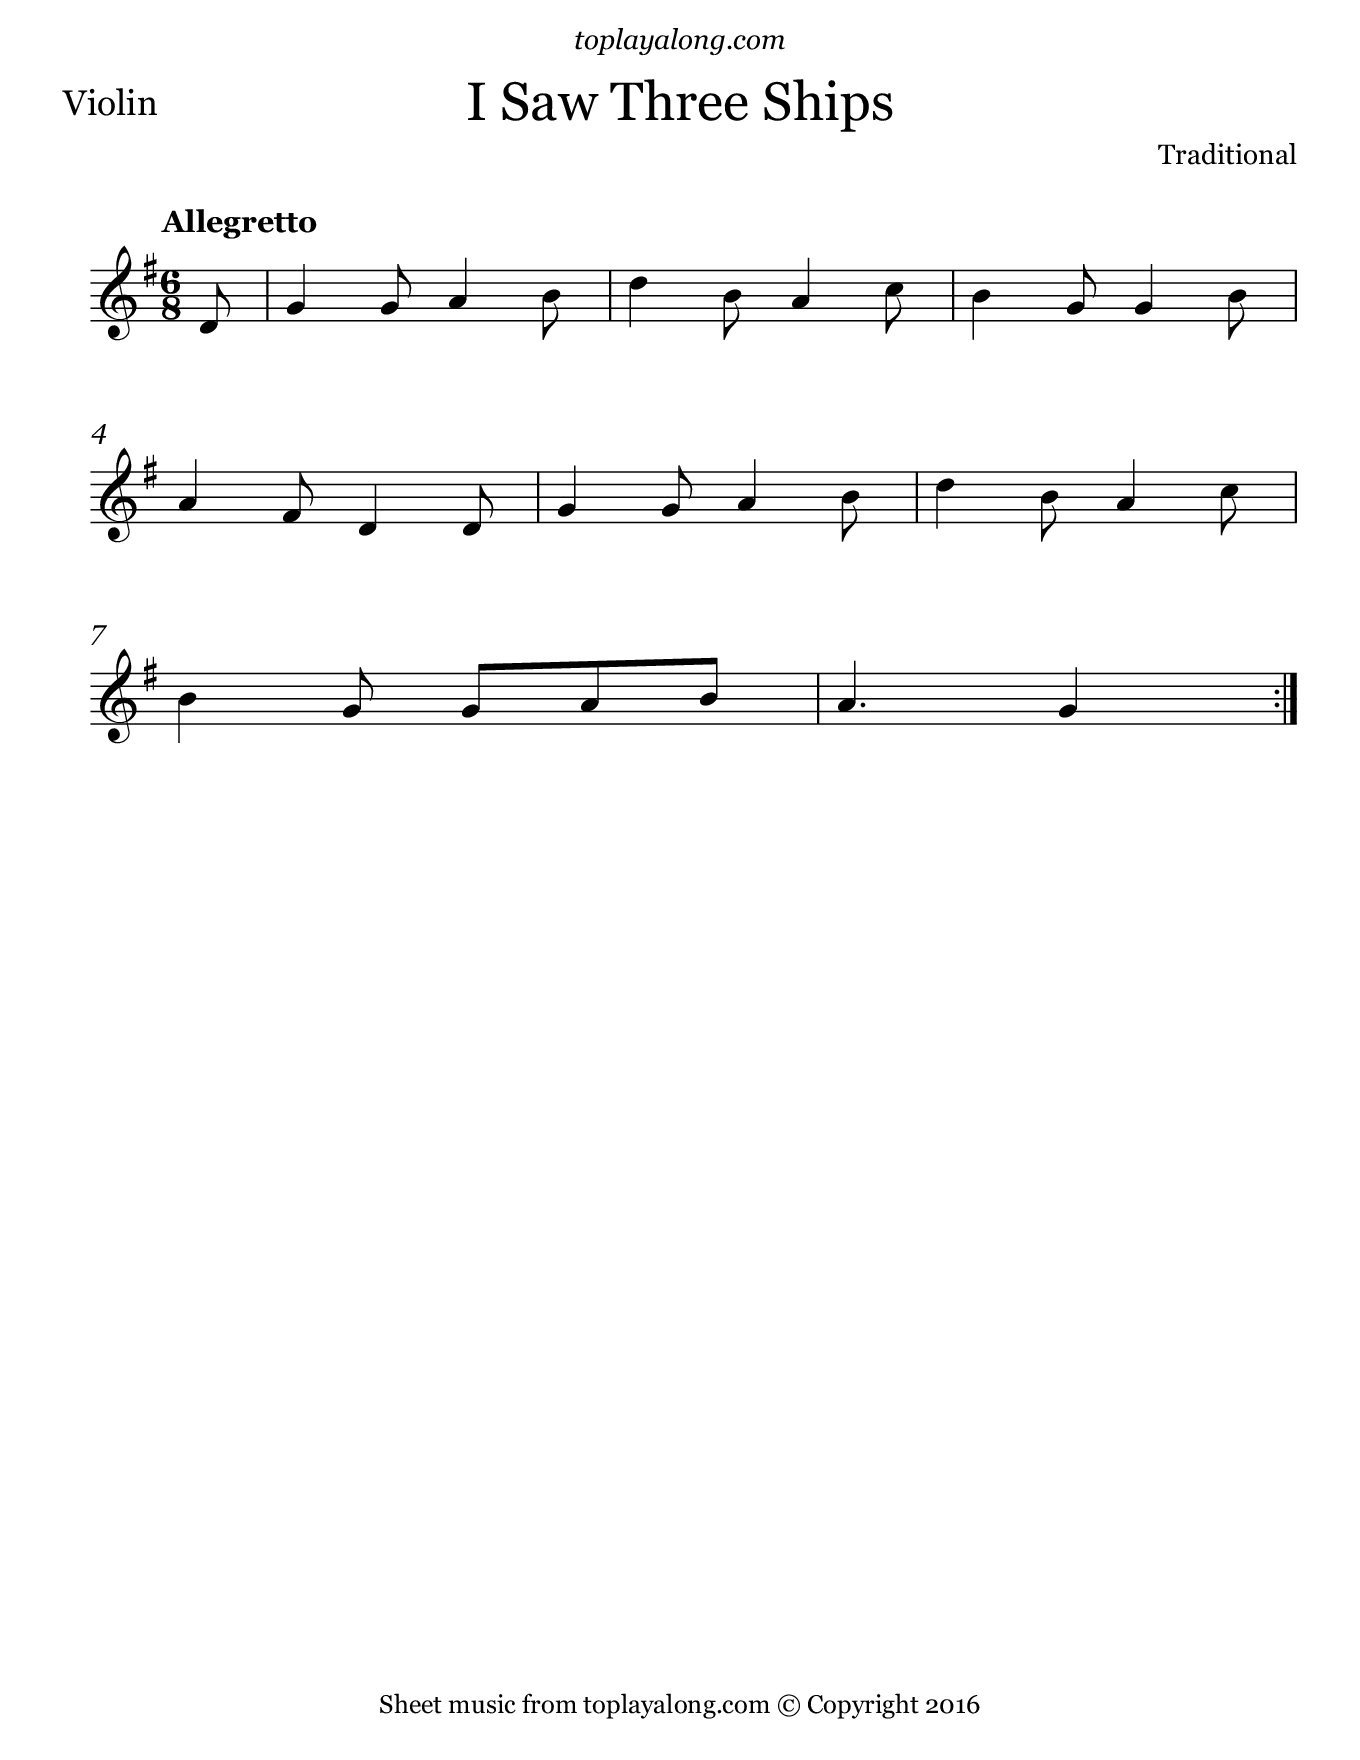 I Saw Three Ships. Sheet music for Violin, page 1.